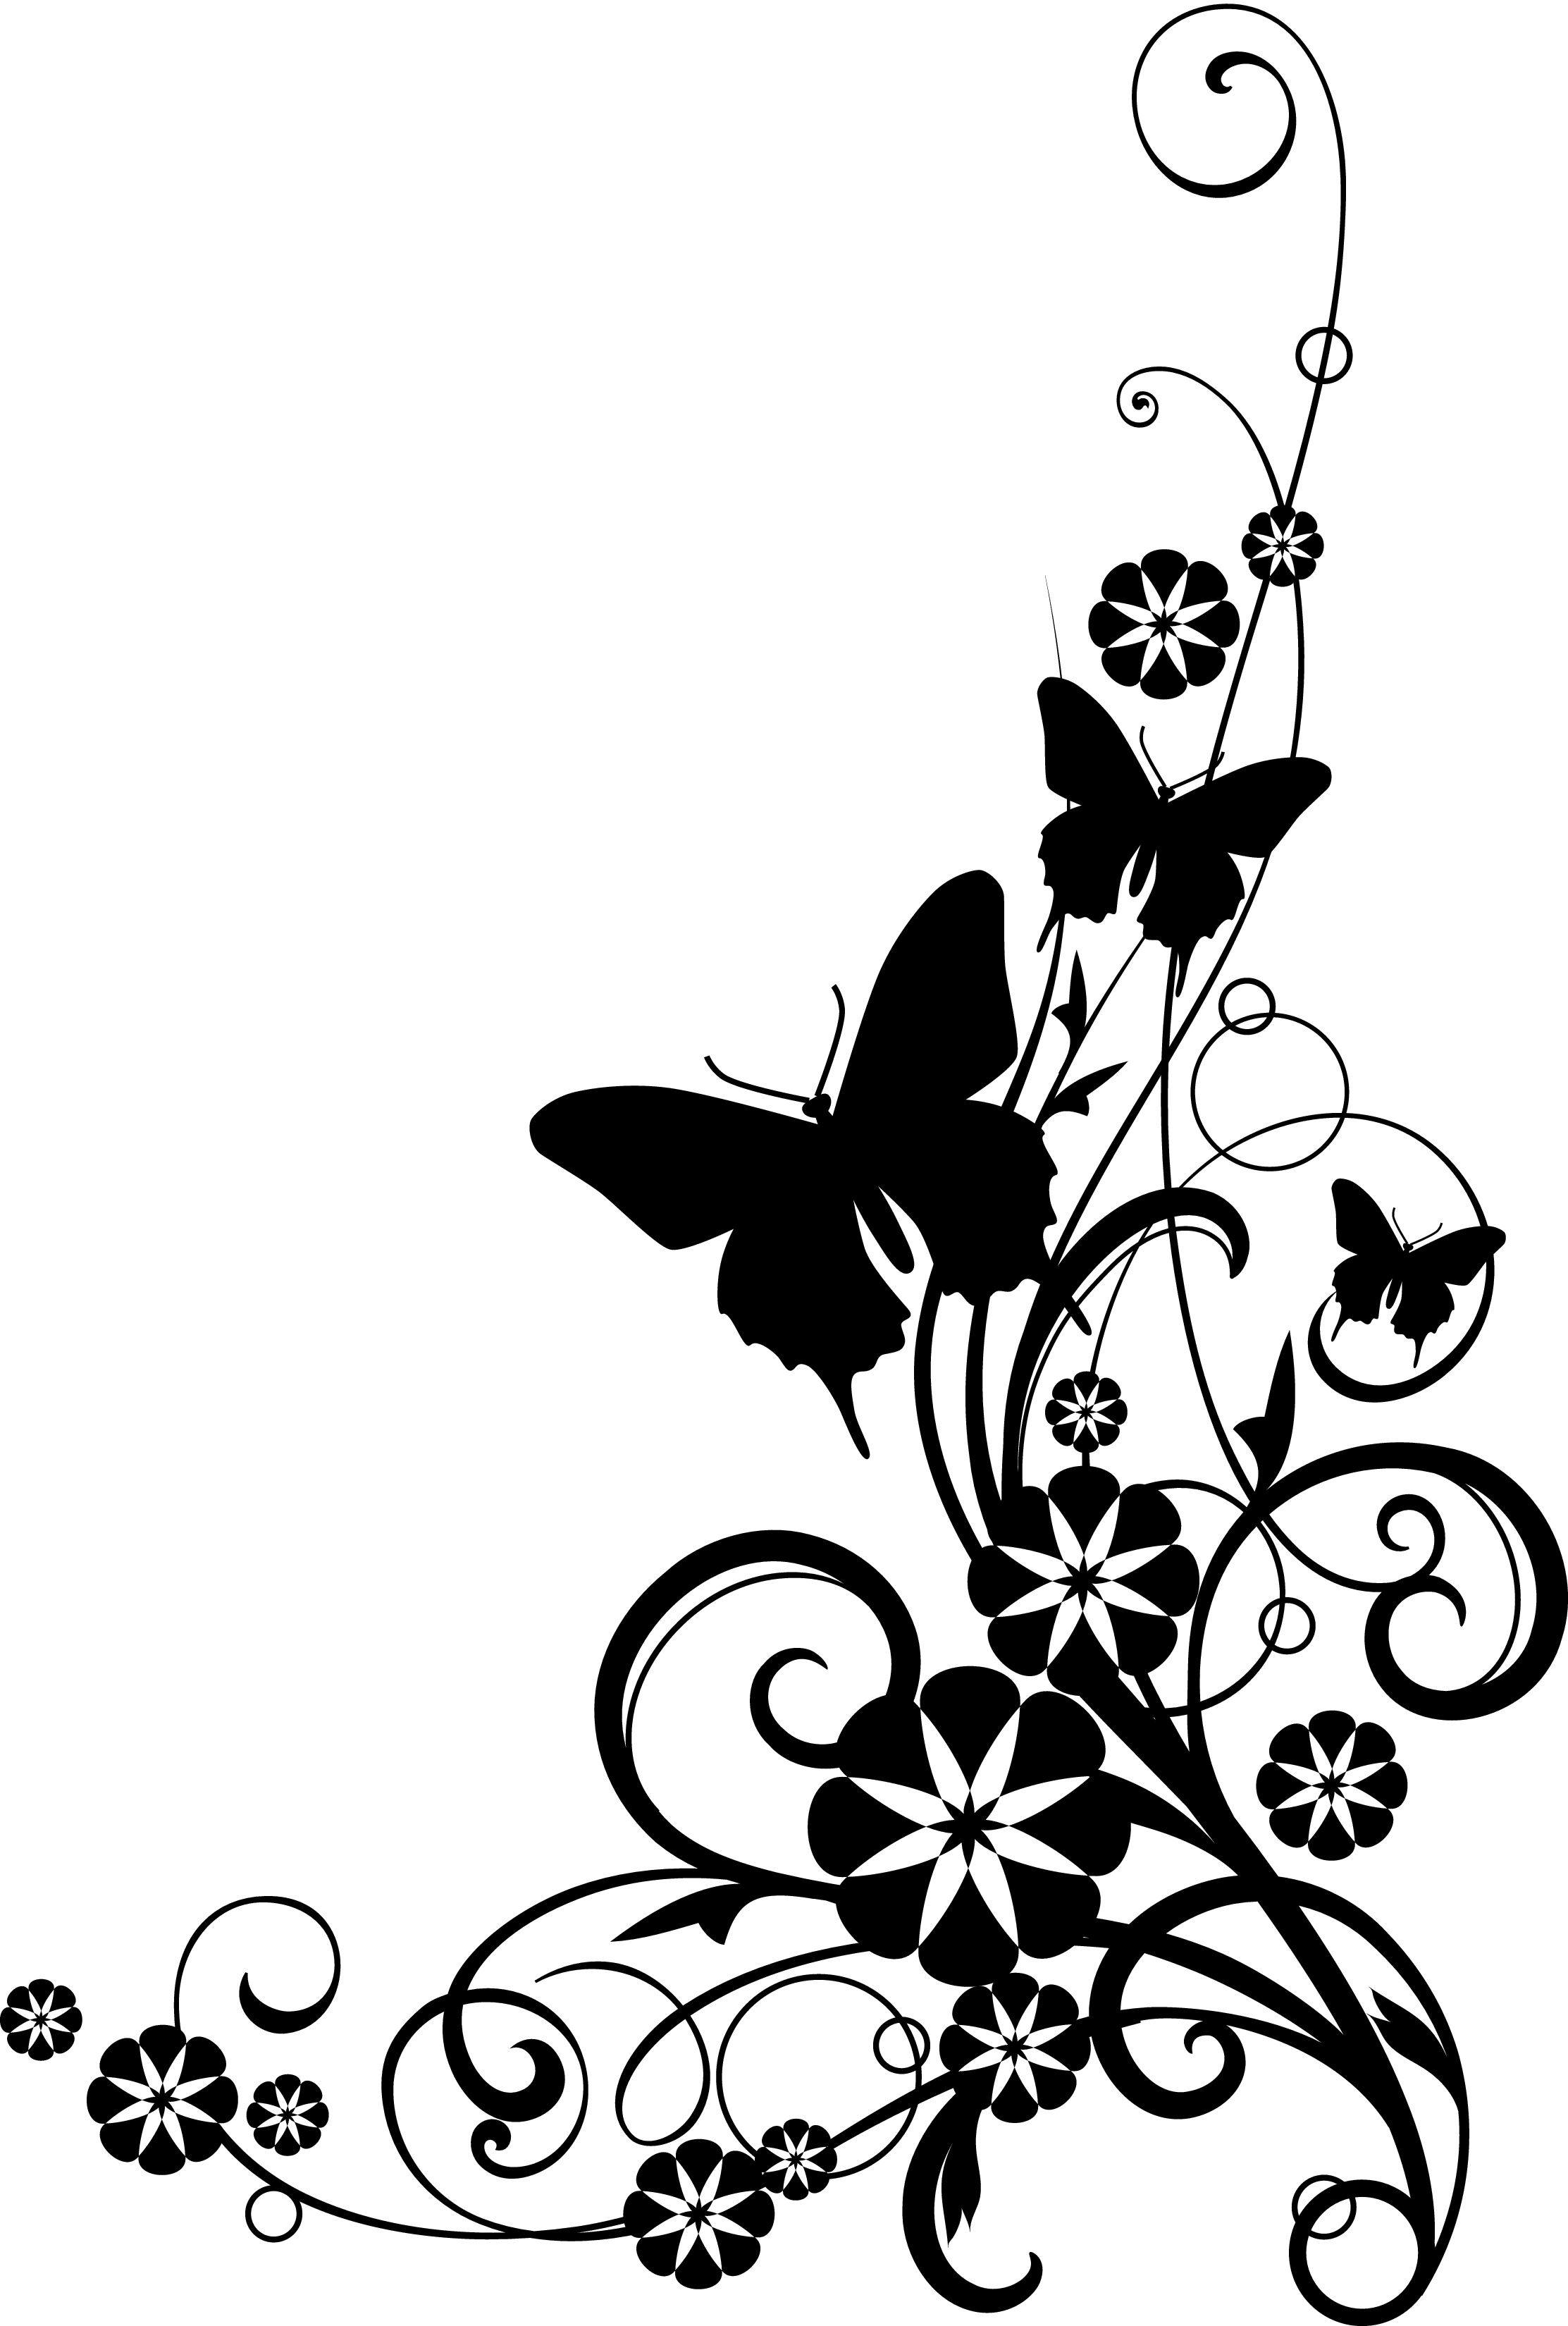 stock Flower border free download. Harvest clipart black and white